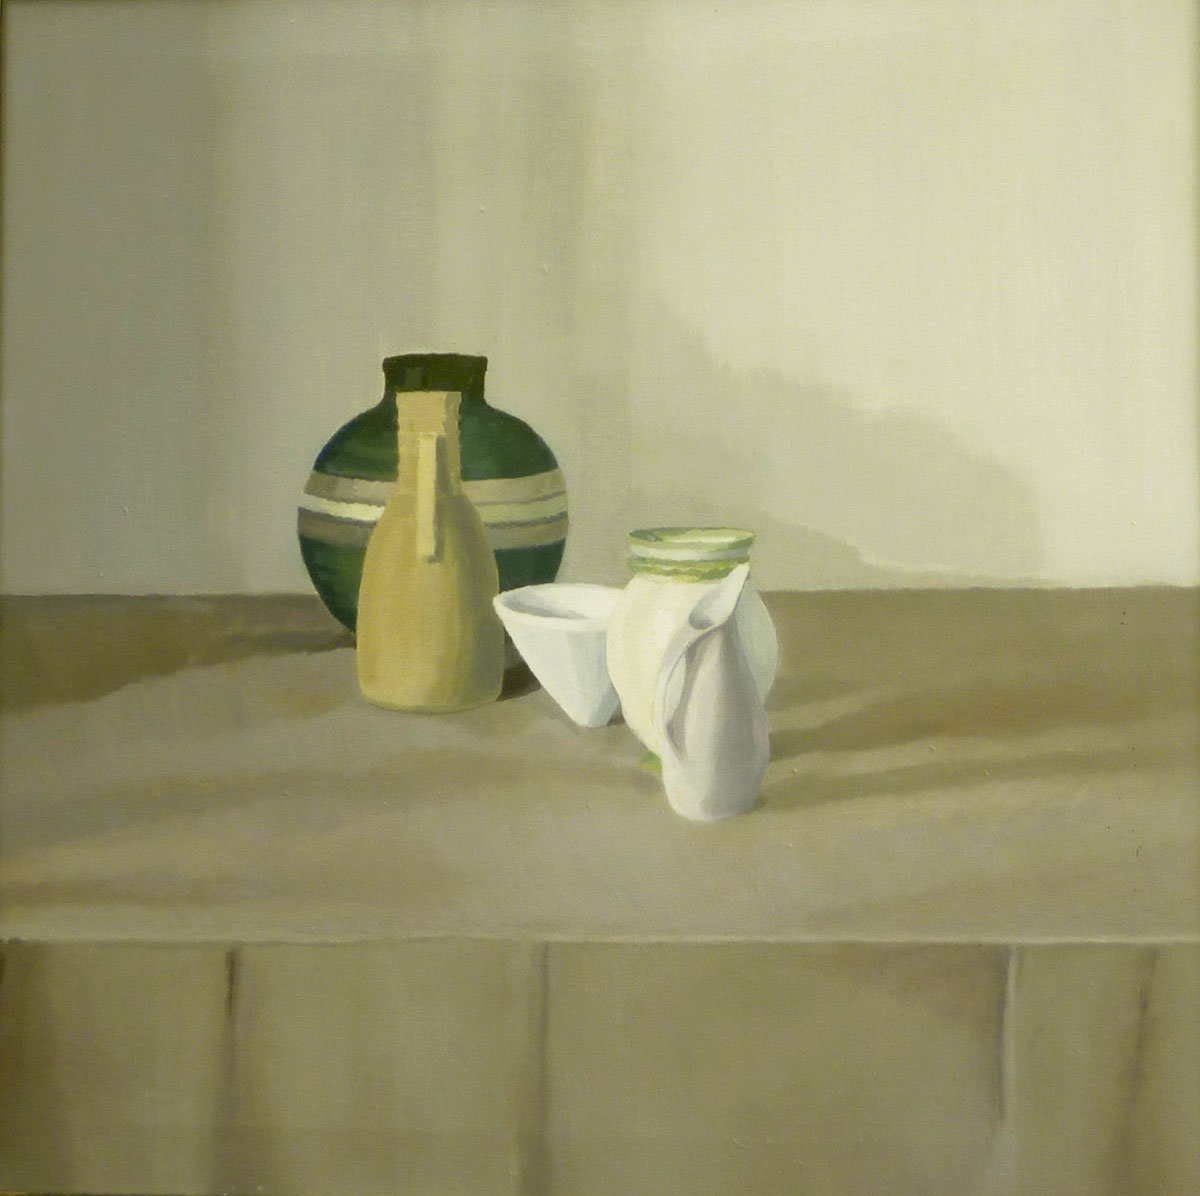 49-Still-Life-(5-objects—curve)1997